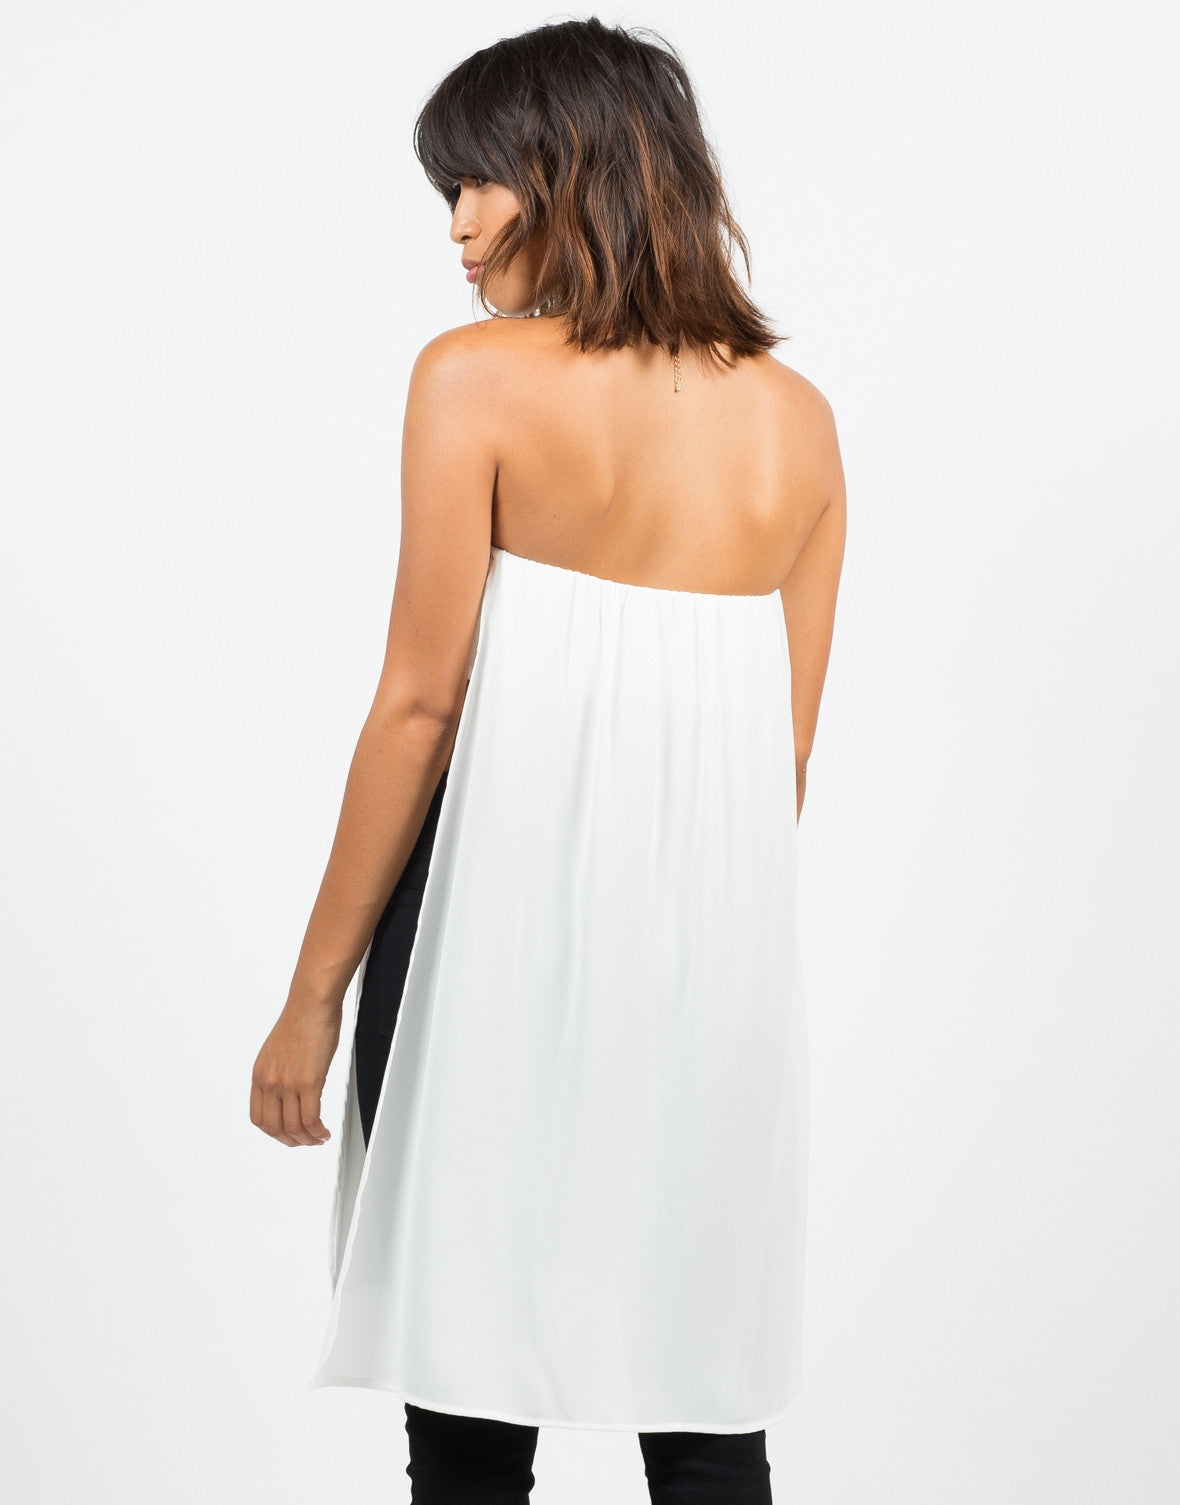 Back View of Open Sides Flowy Top